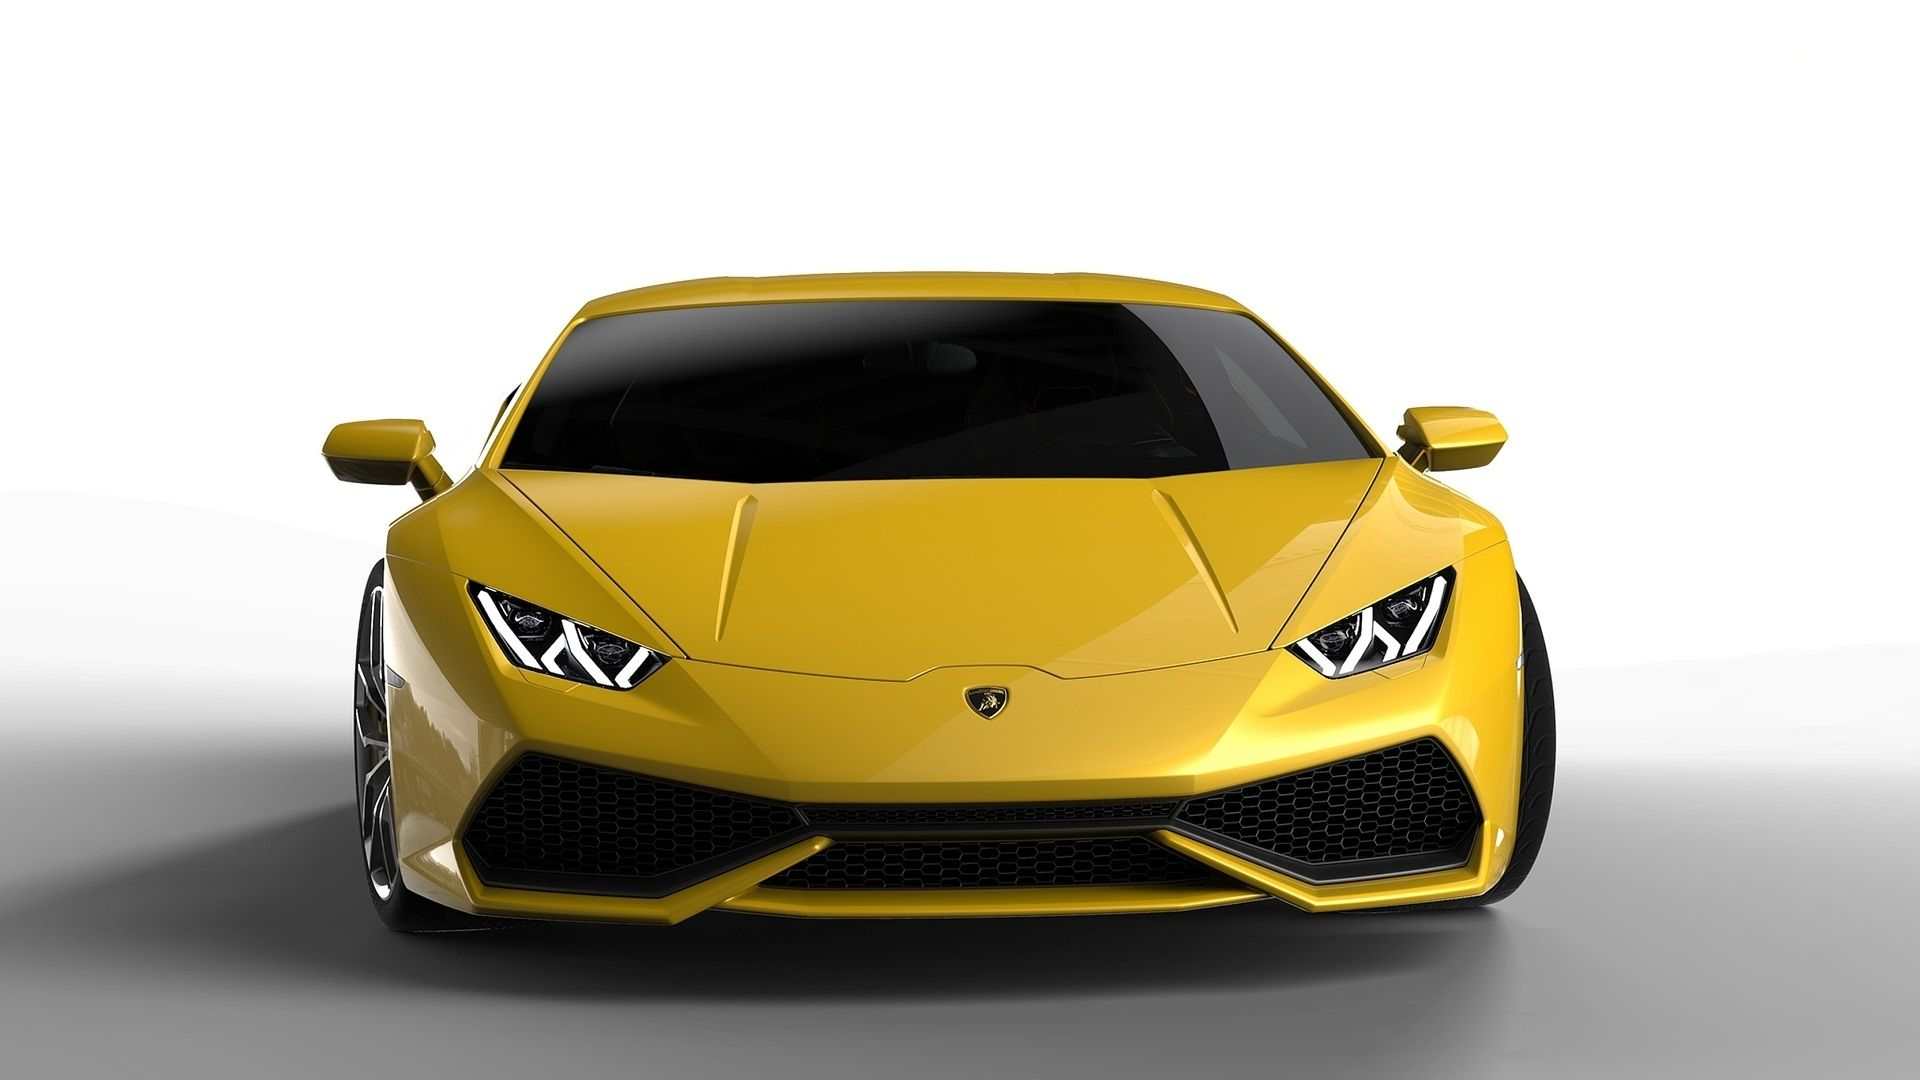 Lamborghini Huracan HD Wallpapers 1080p Widescreen Wallpapers 1920x1080